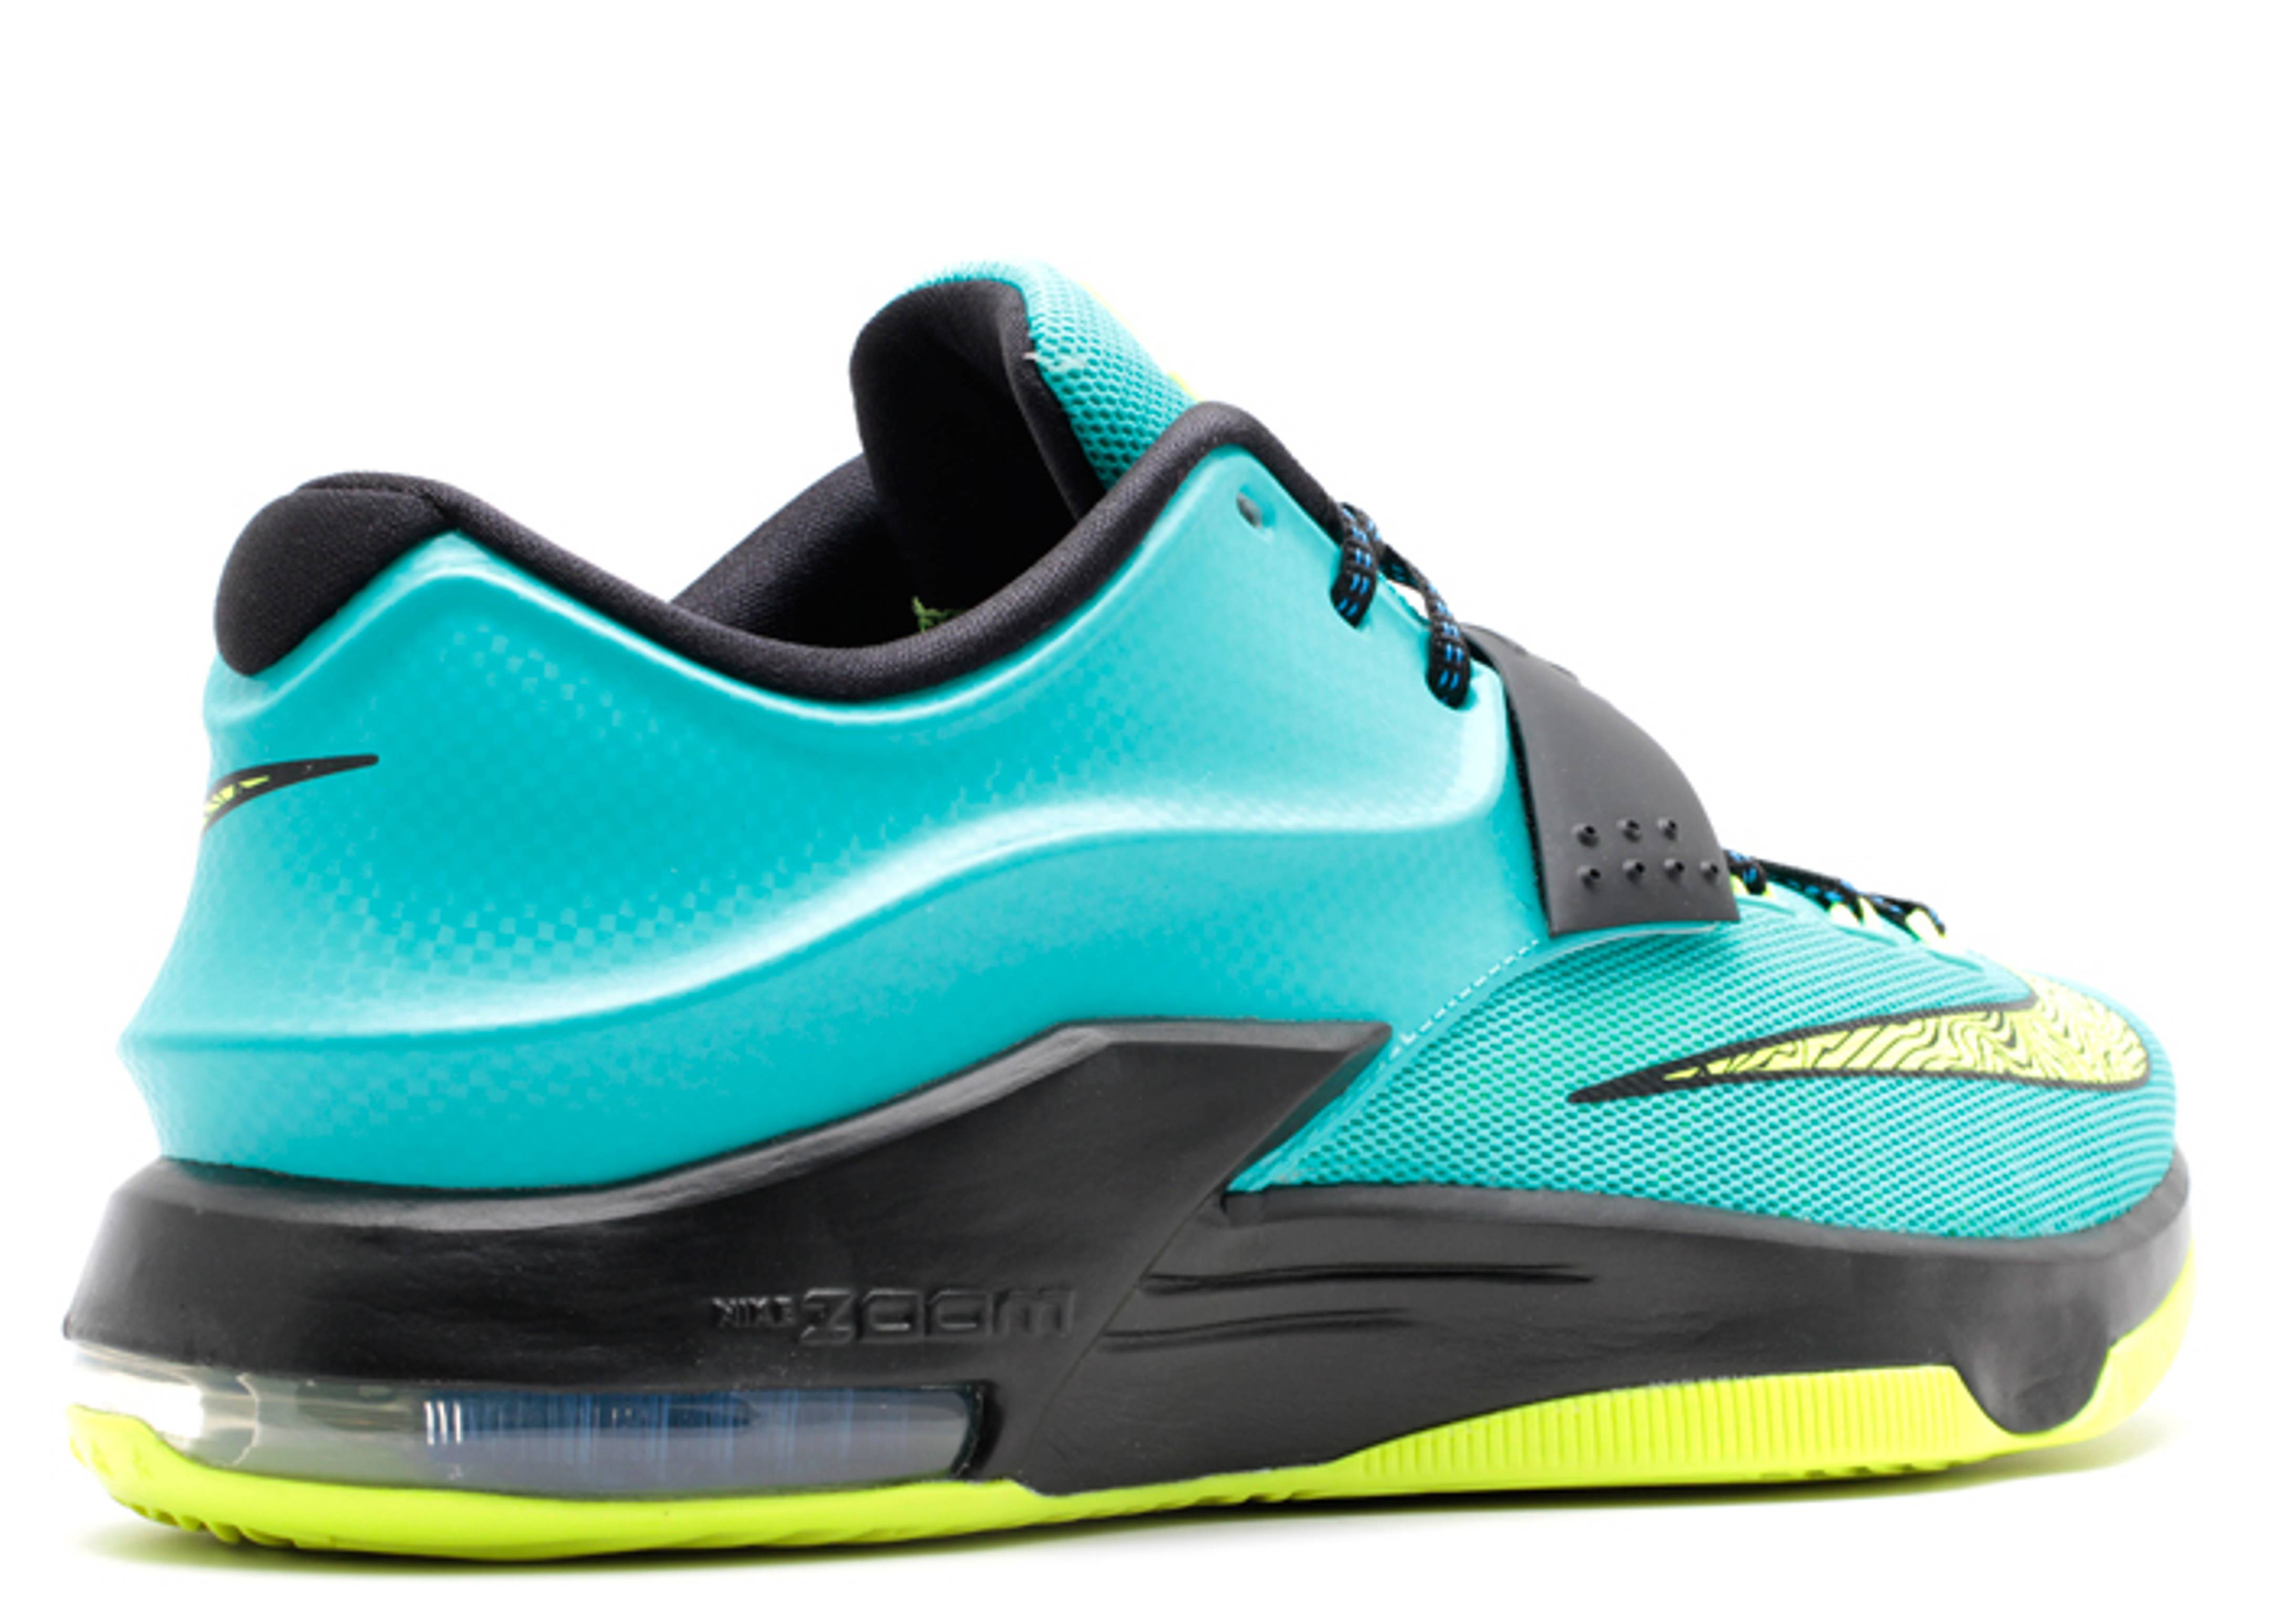 new style a6bd3 8e79f ... germany kd 7 uprising nike 653996 370 hyper jade volt black photo blue  flight club 6e179